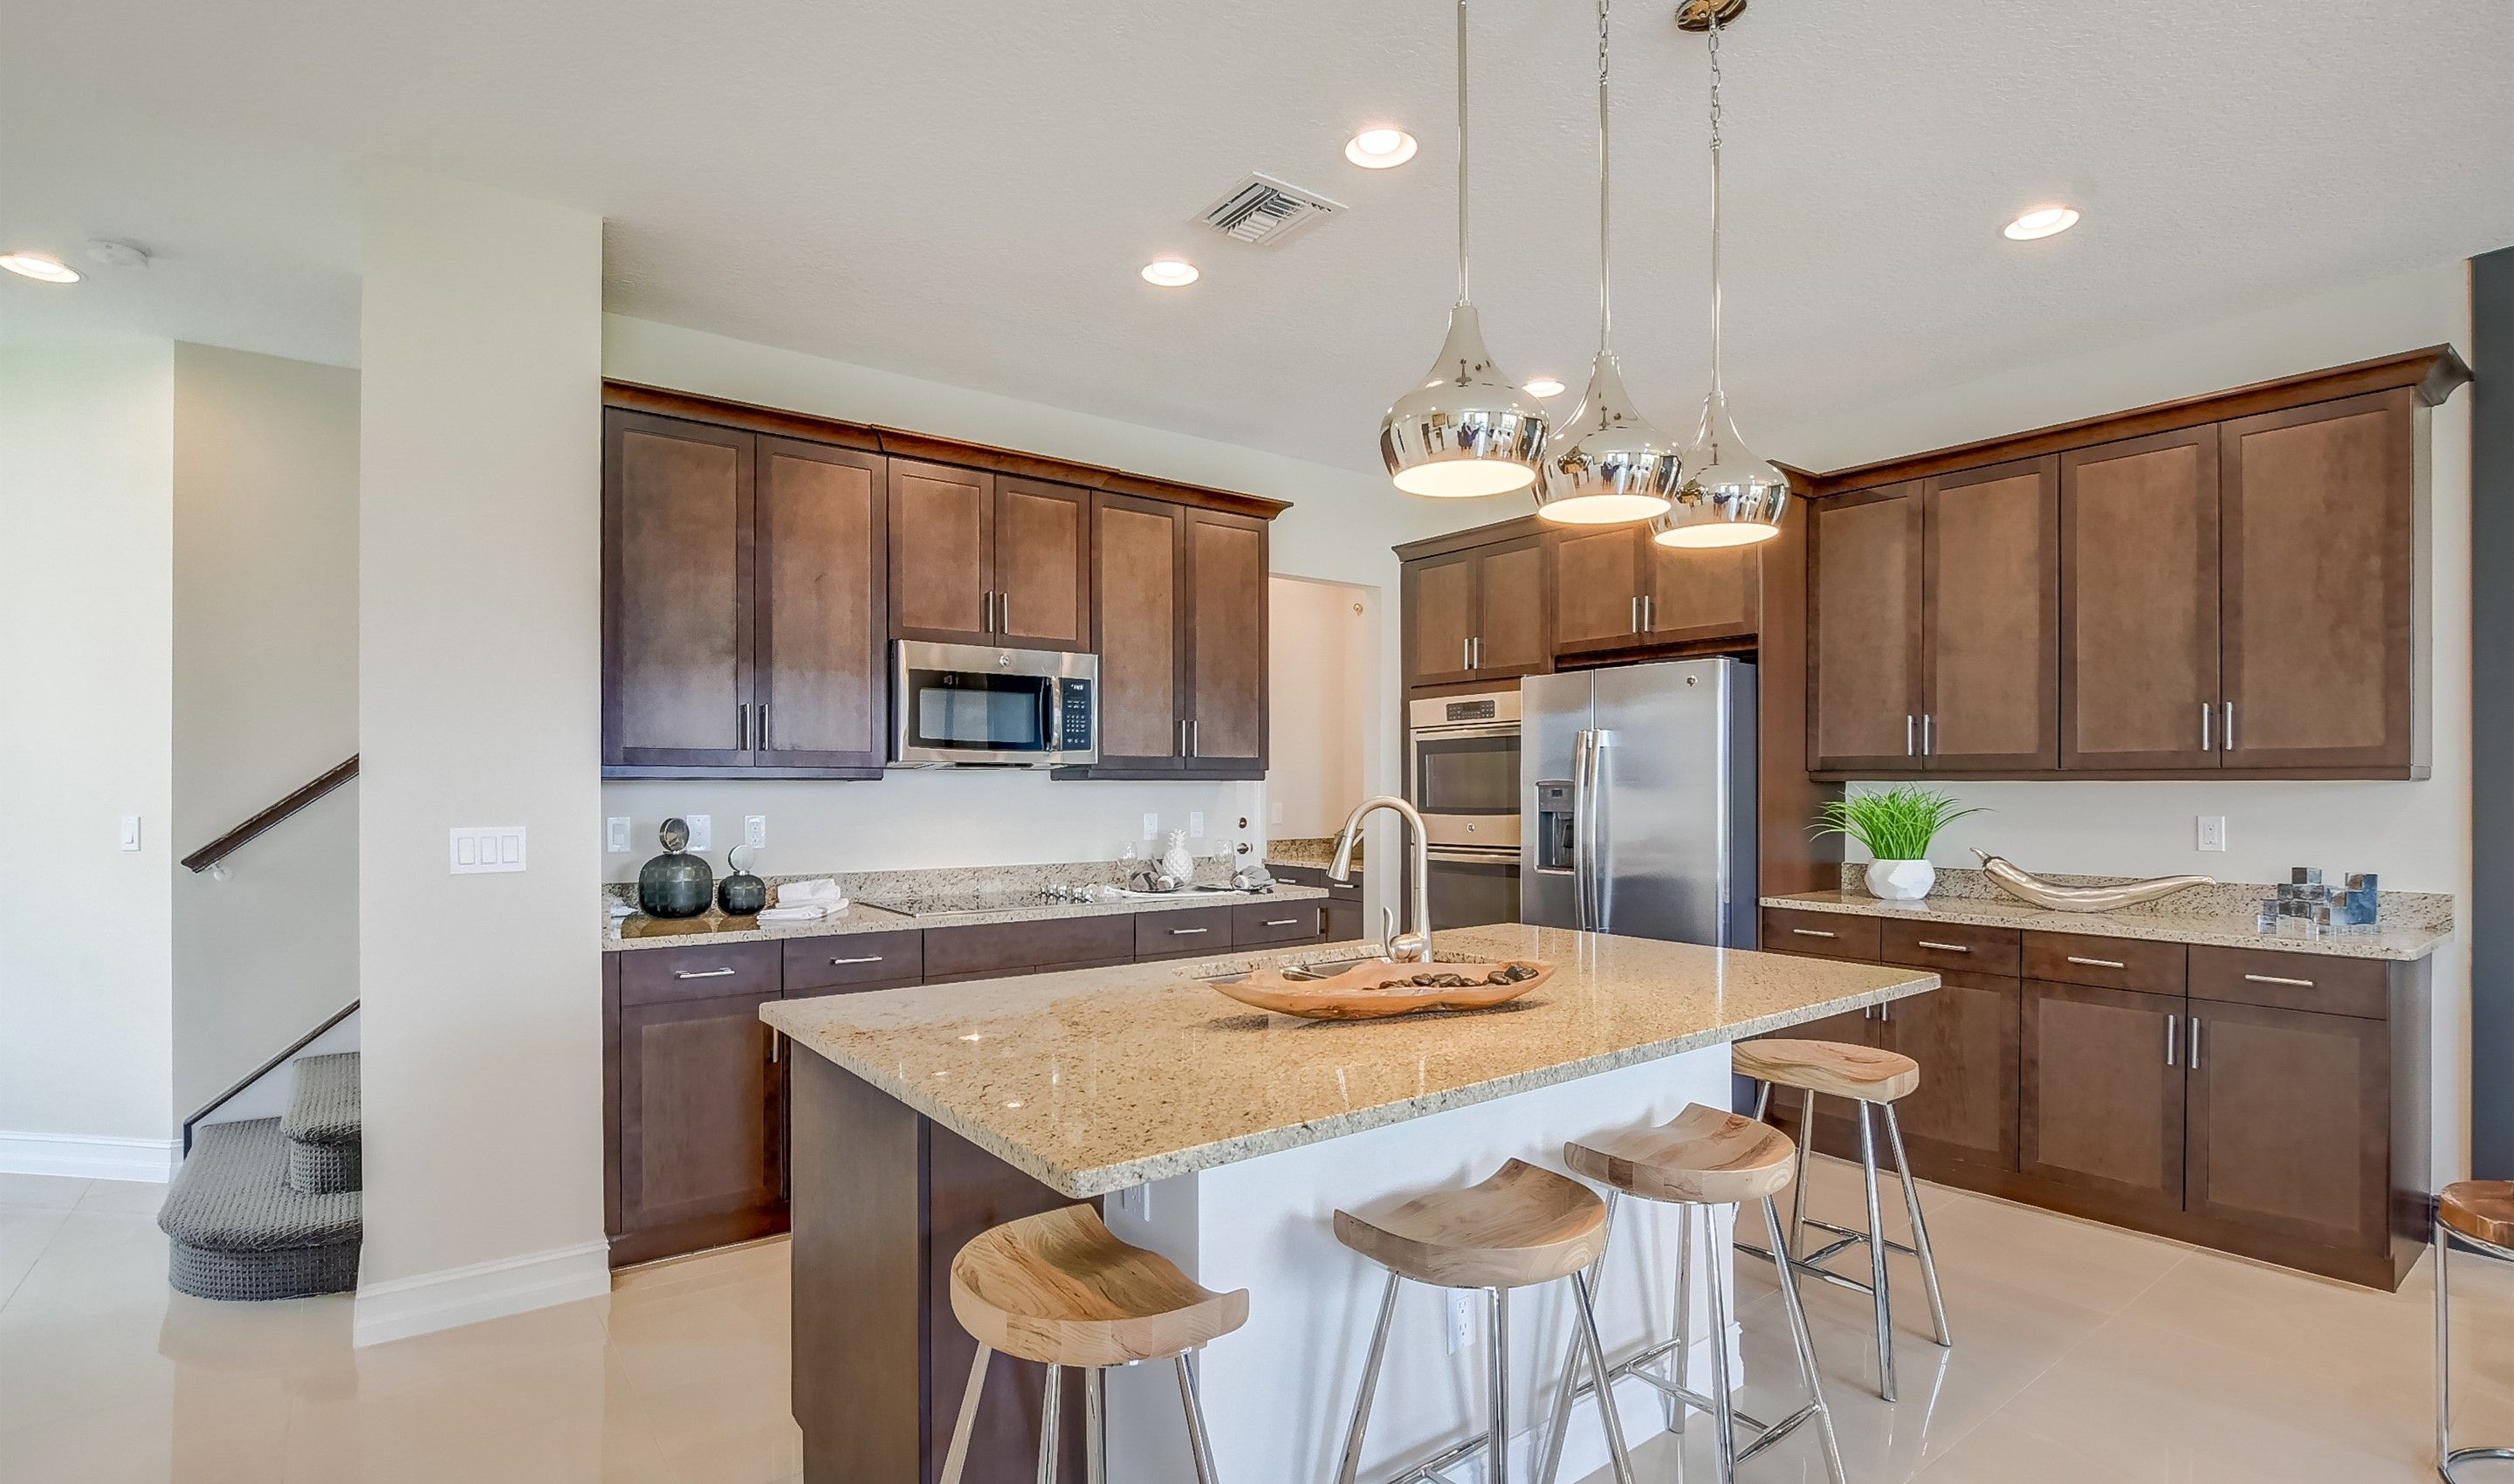 Kitchen featured in the Fullerton II By K. Hovnanian® Homes in Palm Beach County, FL